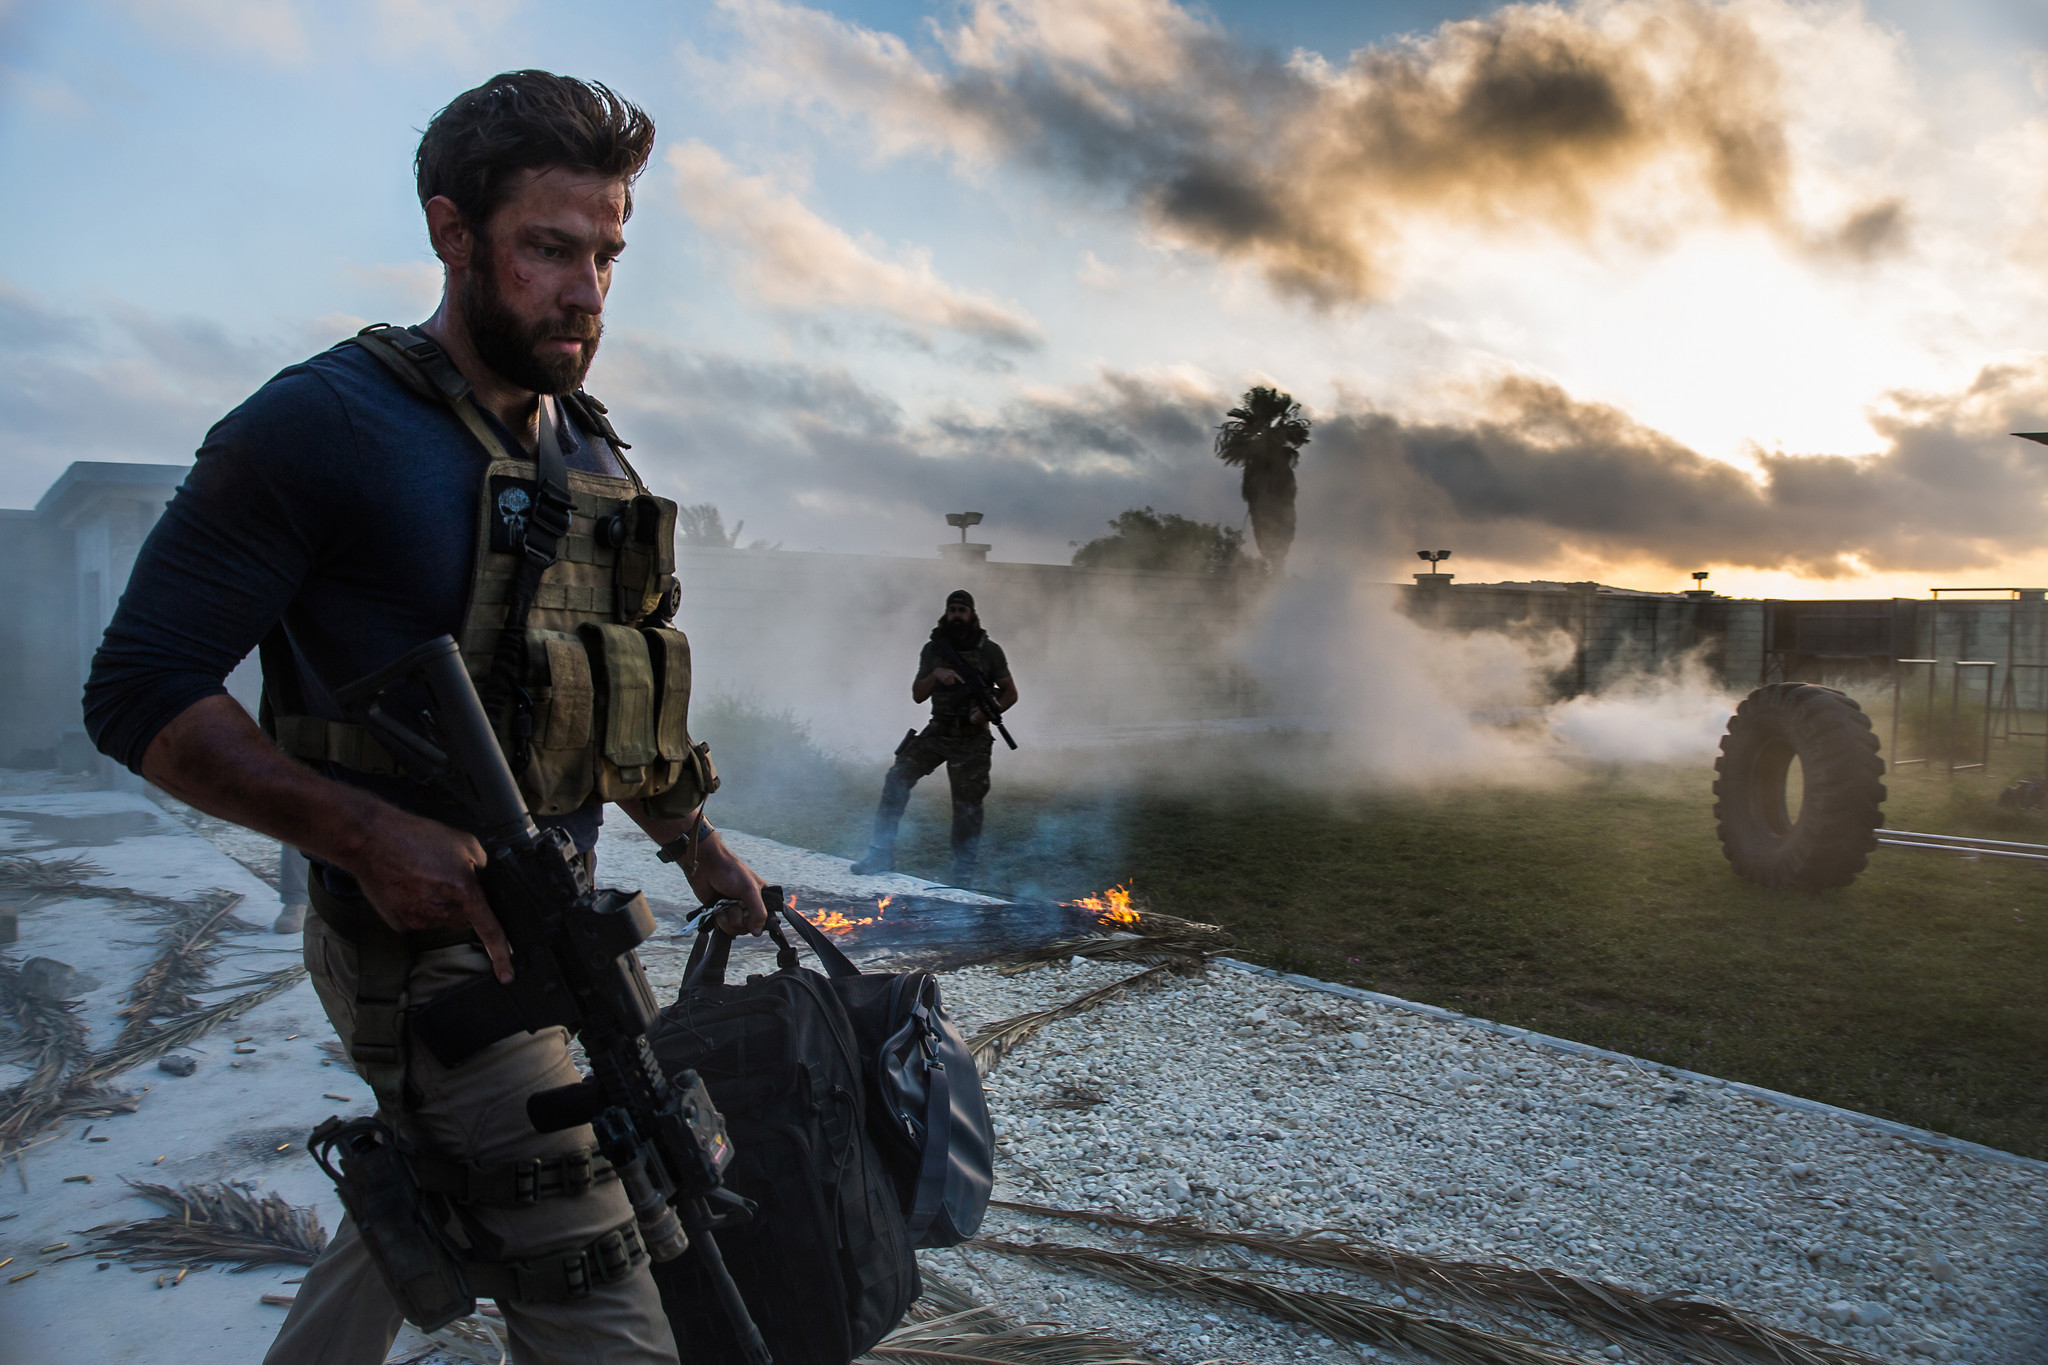 former cia officer in benghazi challenges michael bay s 13 hours